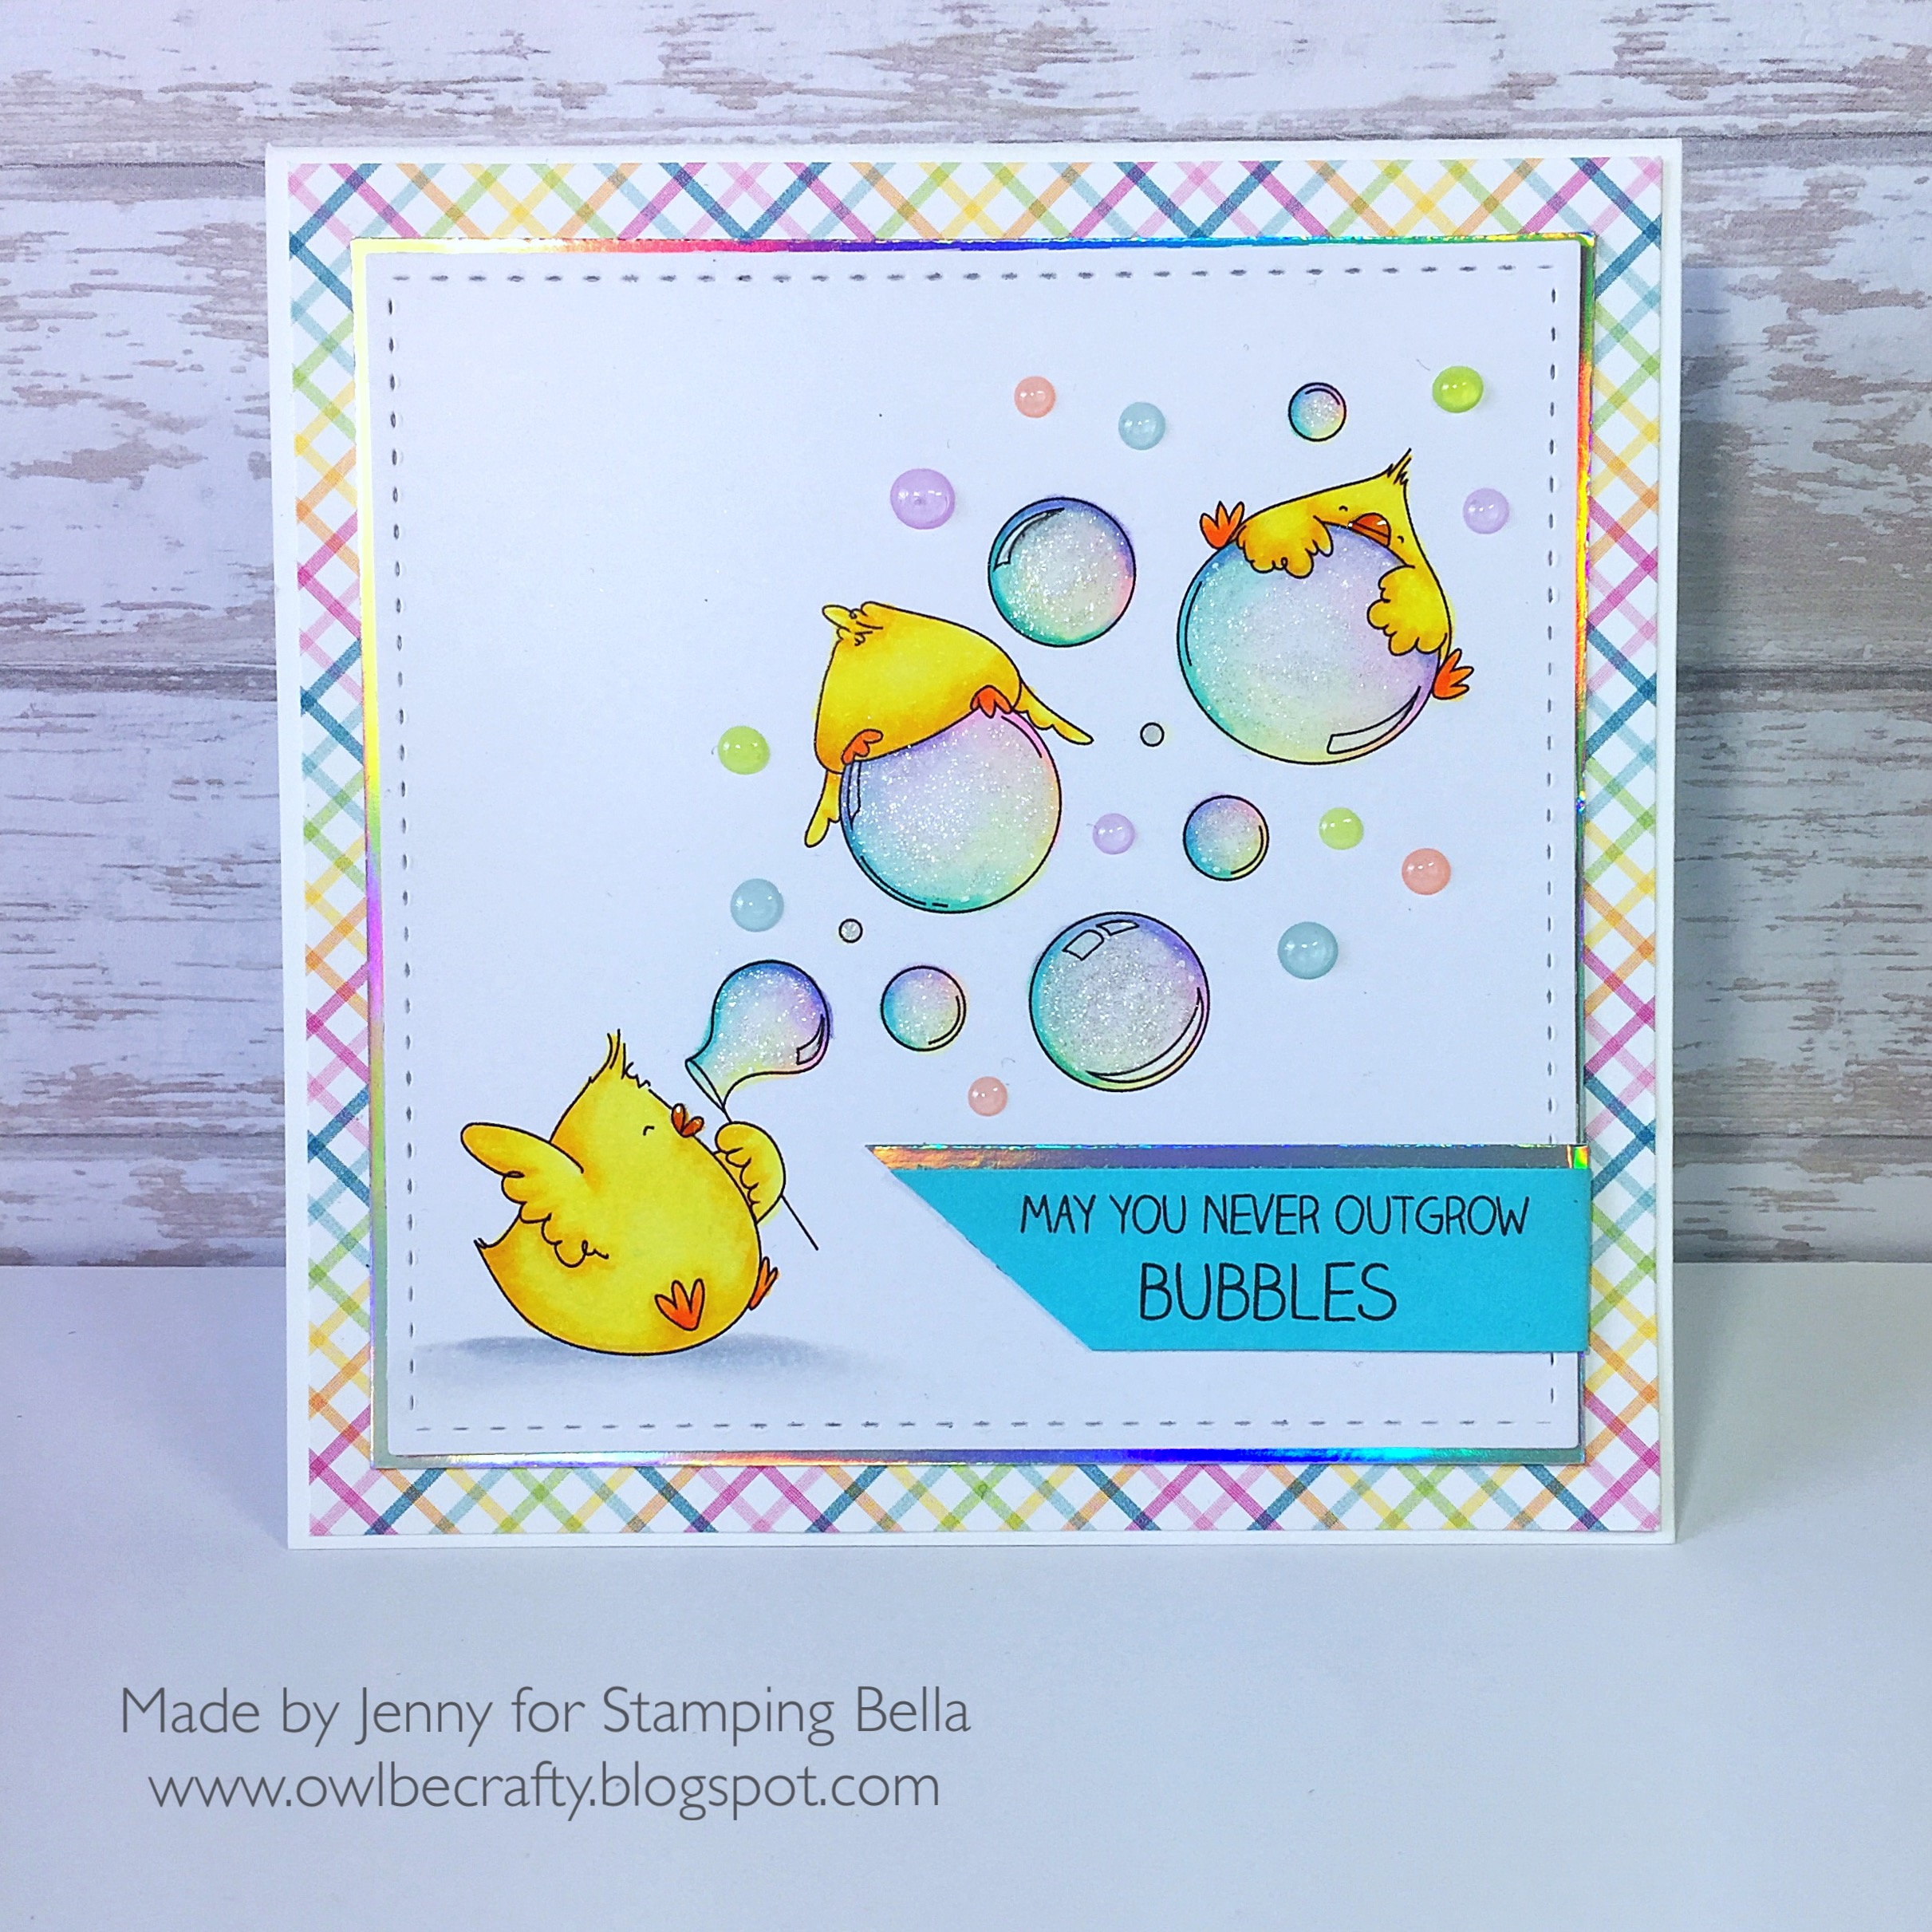 Stamping Bella SUMMER 2017 RELEASE: BUBBLE CHICKS rubber stamps. Card by Jenny Bordeaux